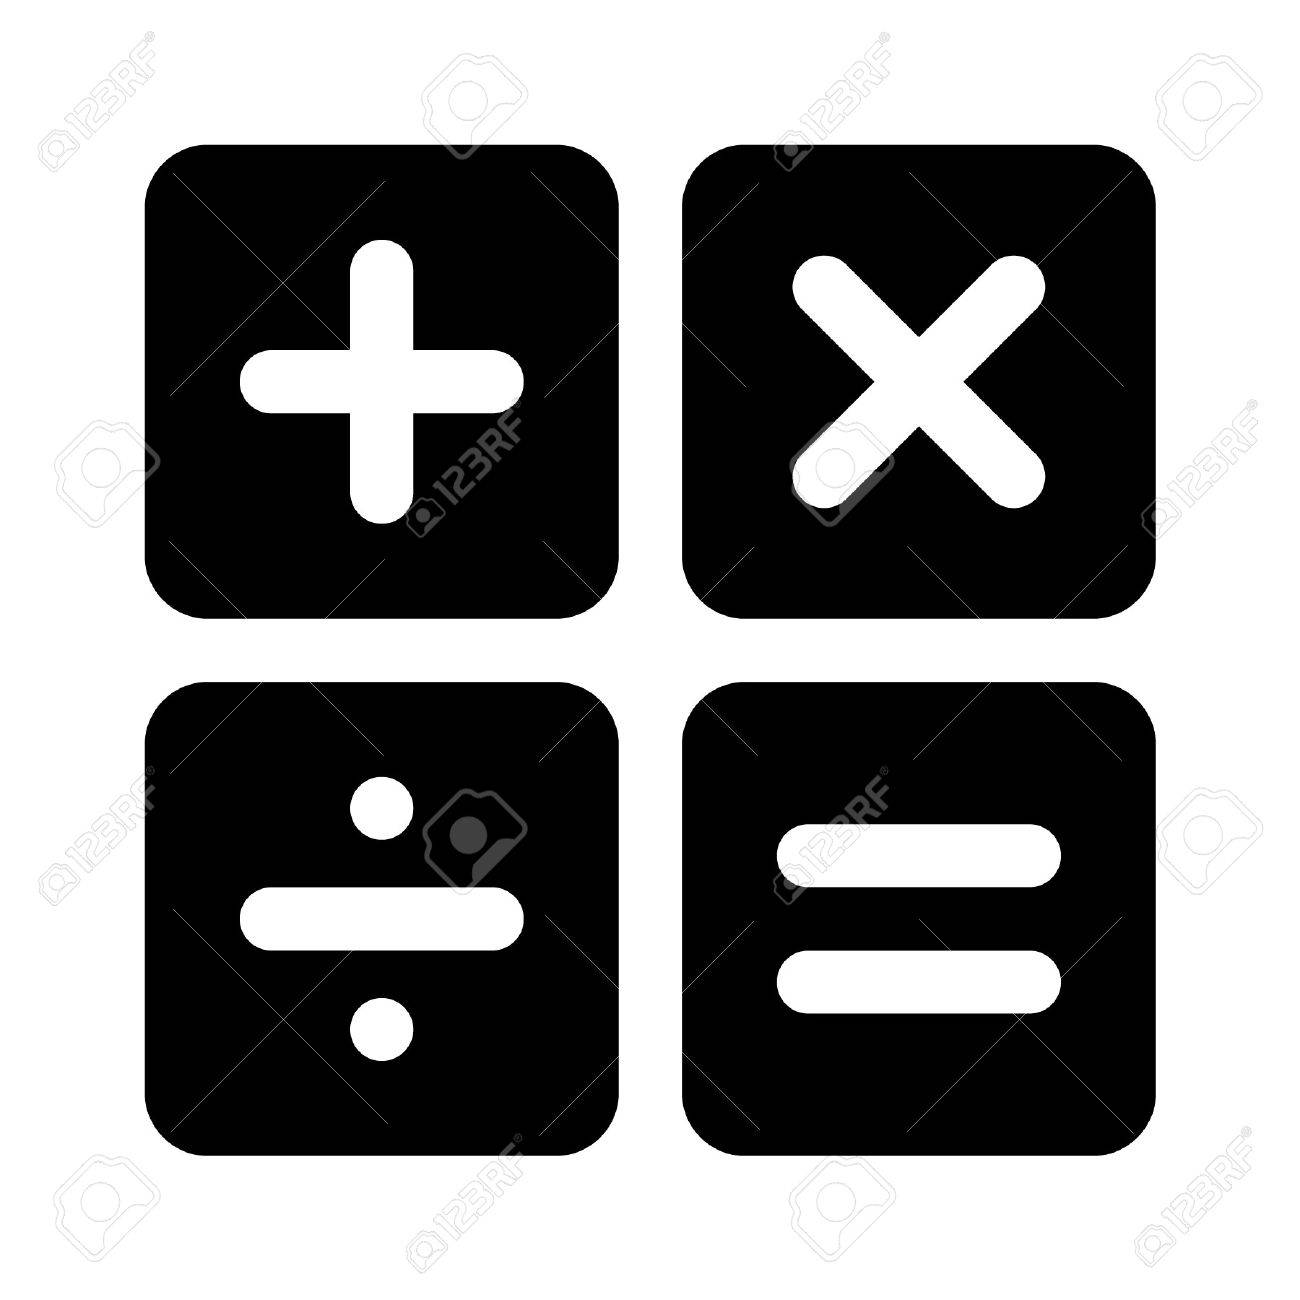 calculator arithmetic signs flat icon for apps royalty free cliparts